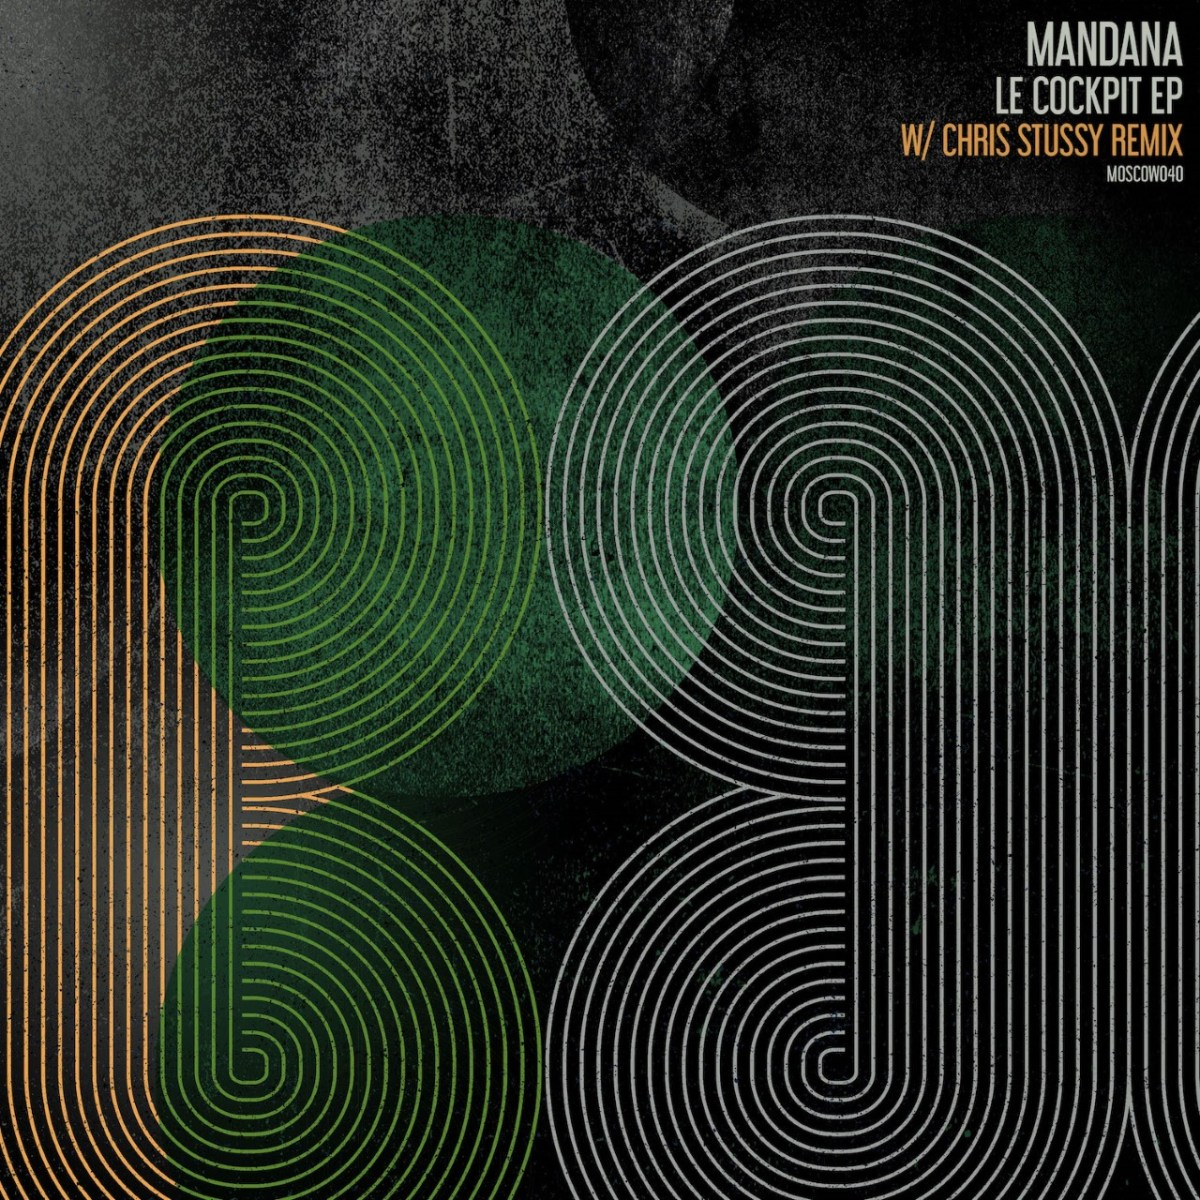 MANDANA DEBUTS ON MOSCOW RECORDS WITH 'LE COCKPIT' EP